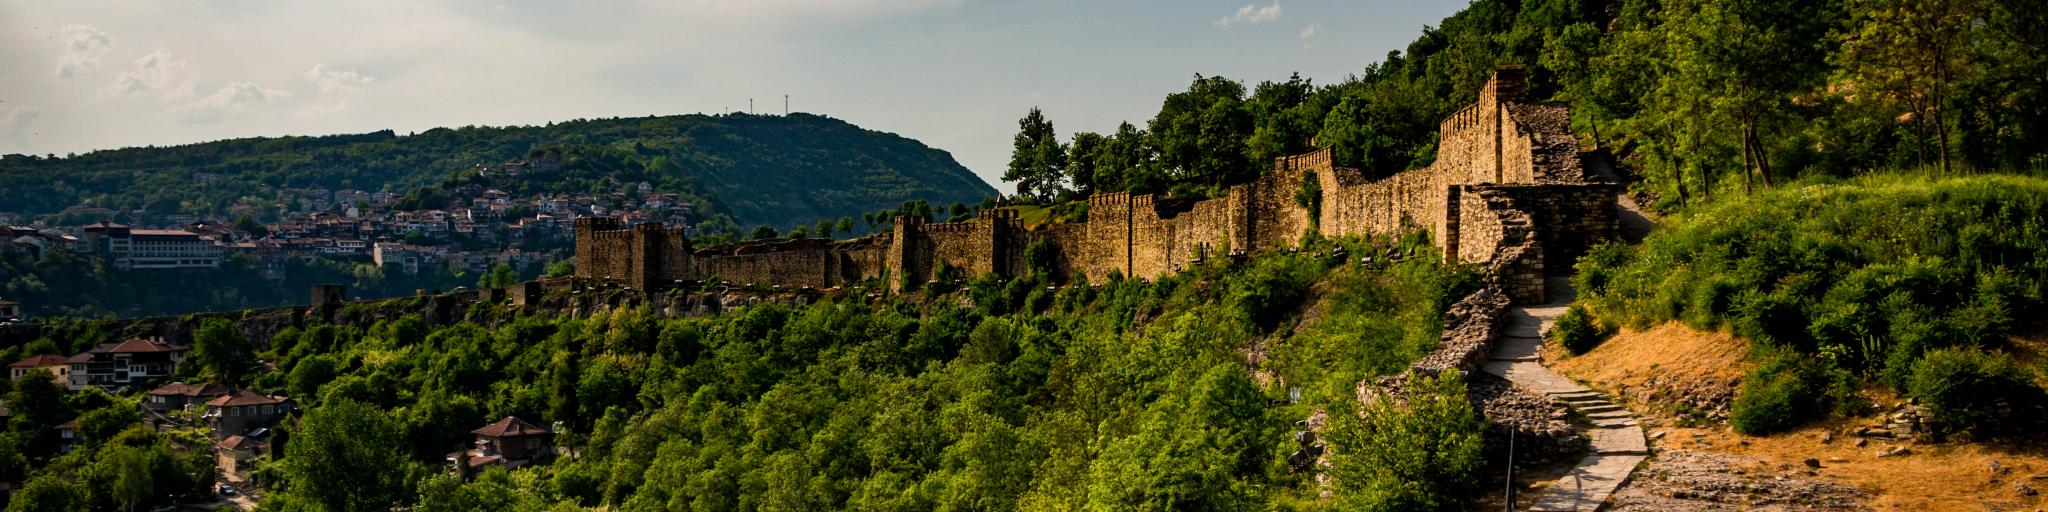 The medieval Tsarevets Fortress sits on a hill in the old city of Veliko Tarnovo